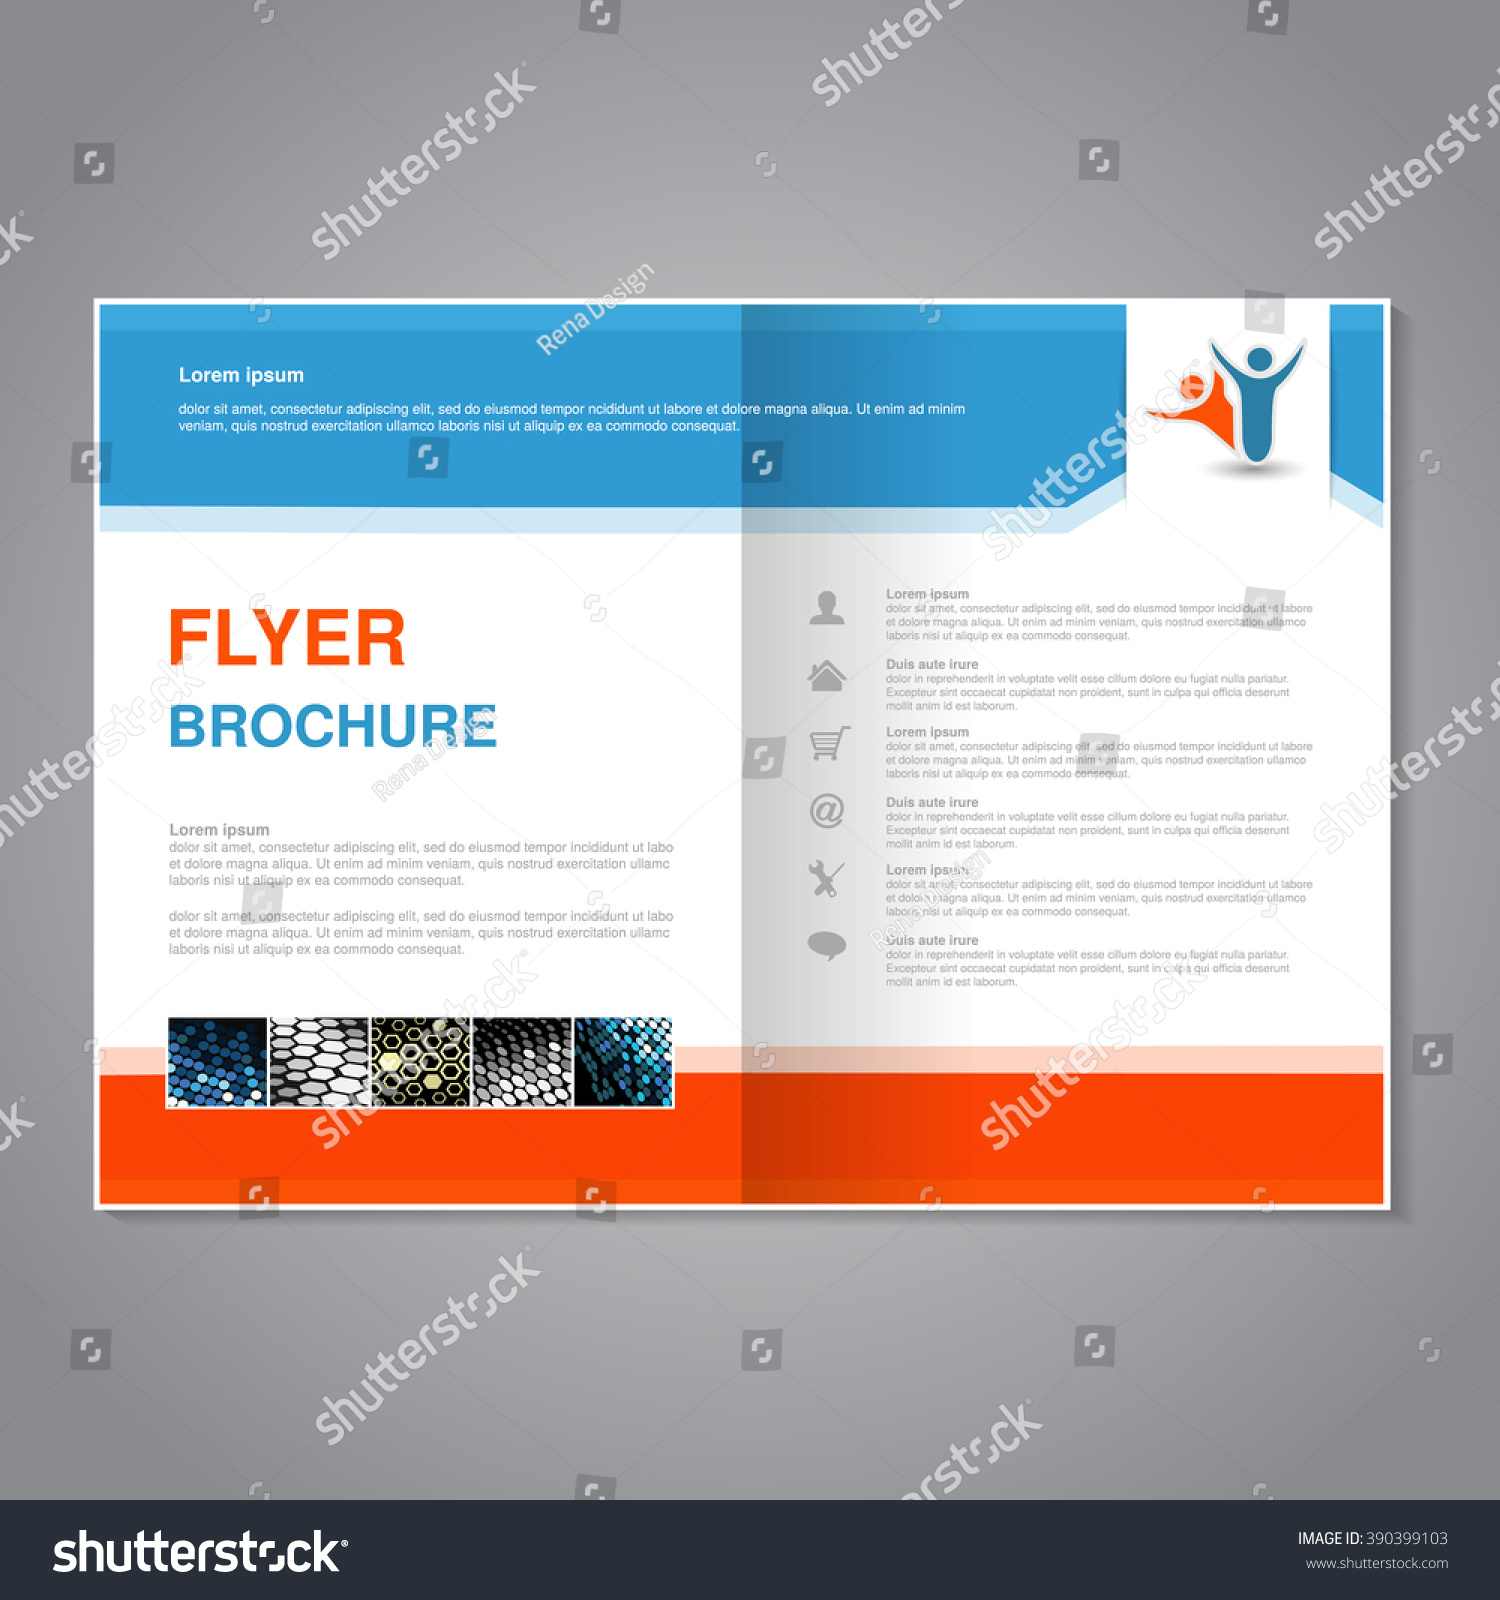 Poster design golden ratio - Vector Modern Brochure Abstract Flyer With Simple Dotted Design Aspect Ratio For A4 Size